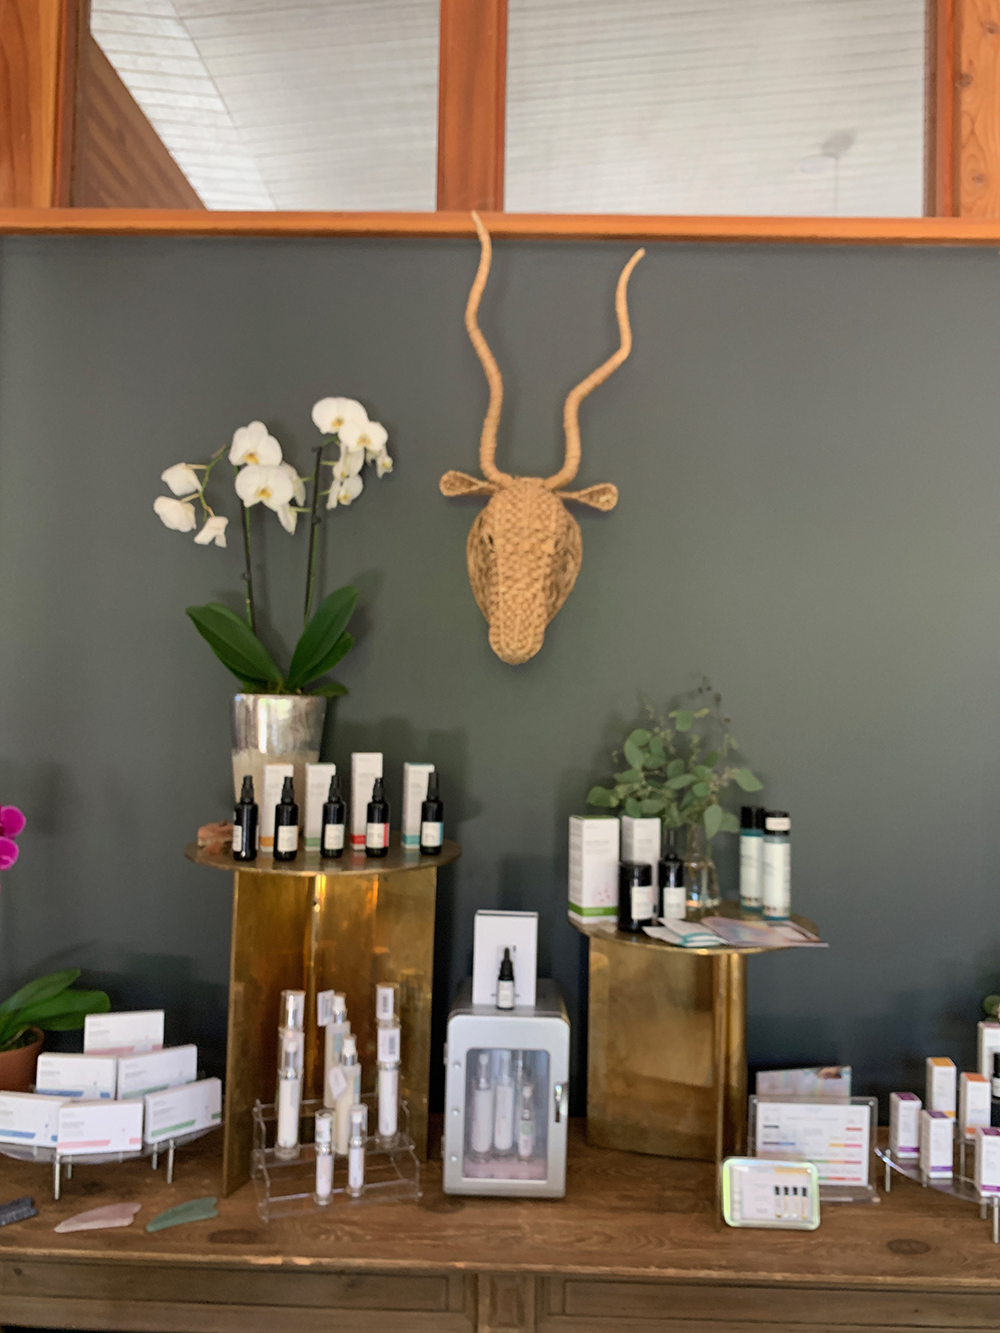 One of the spa's retail displays with various skincare and beauty products.